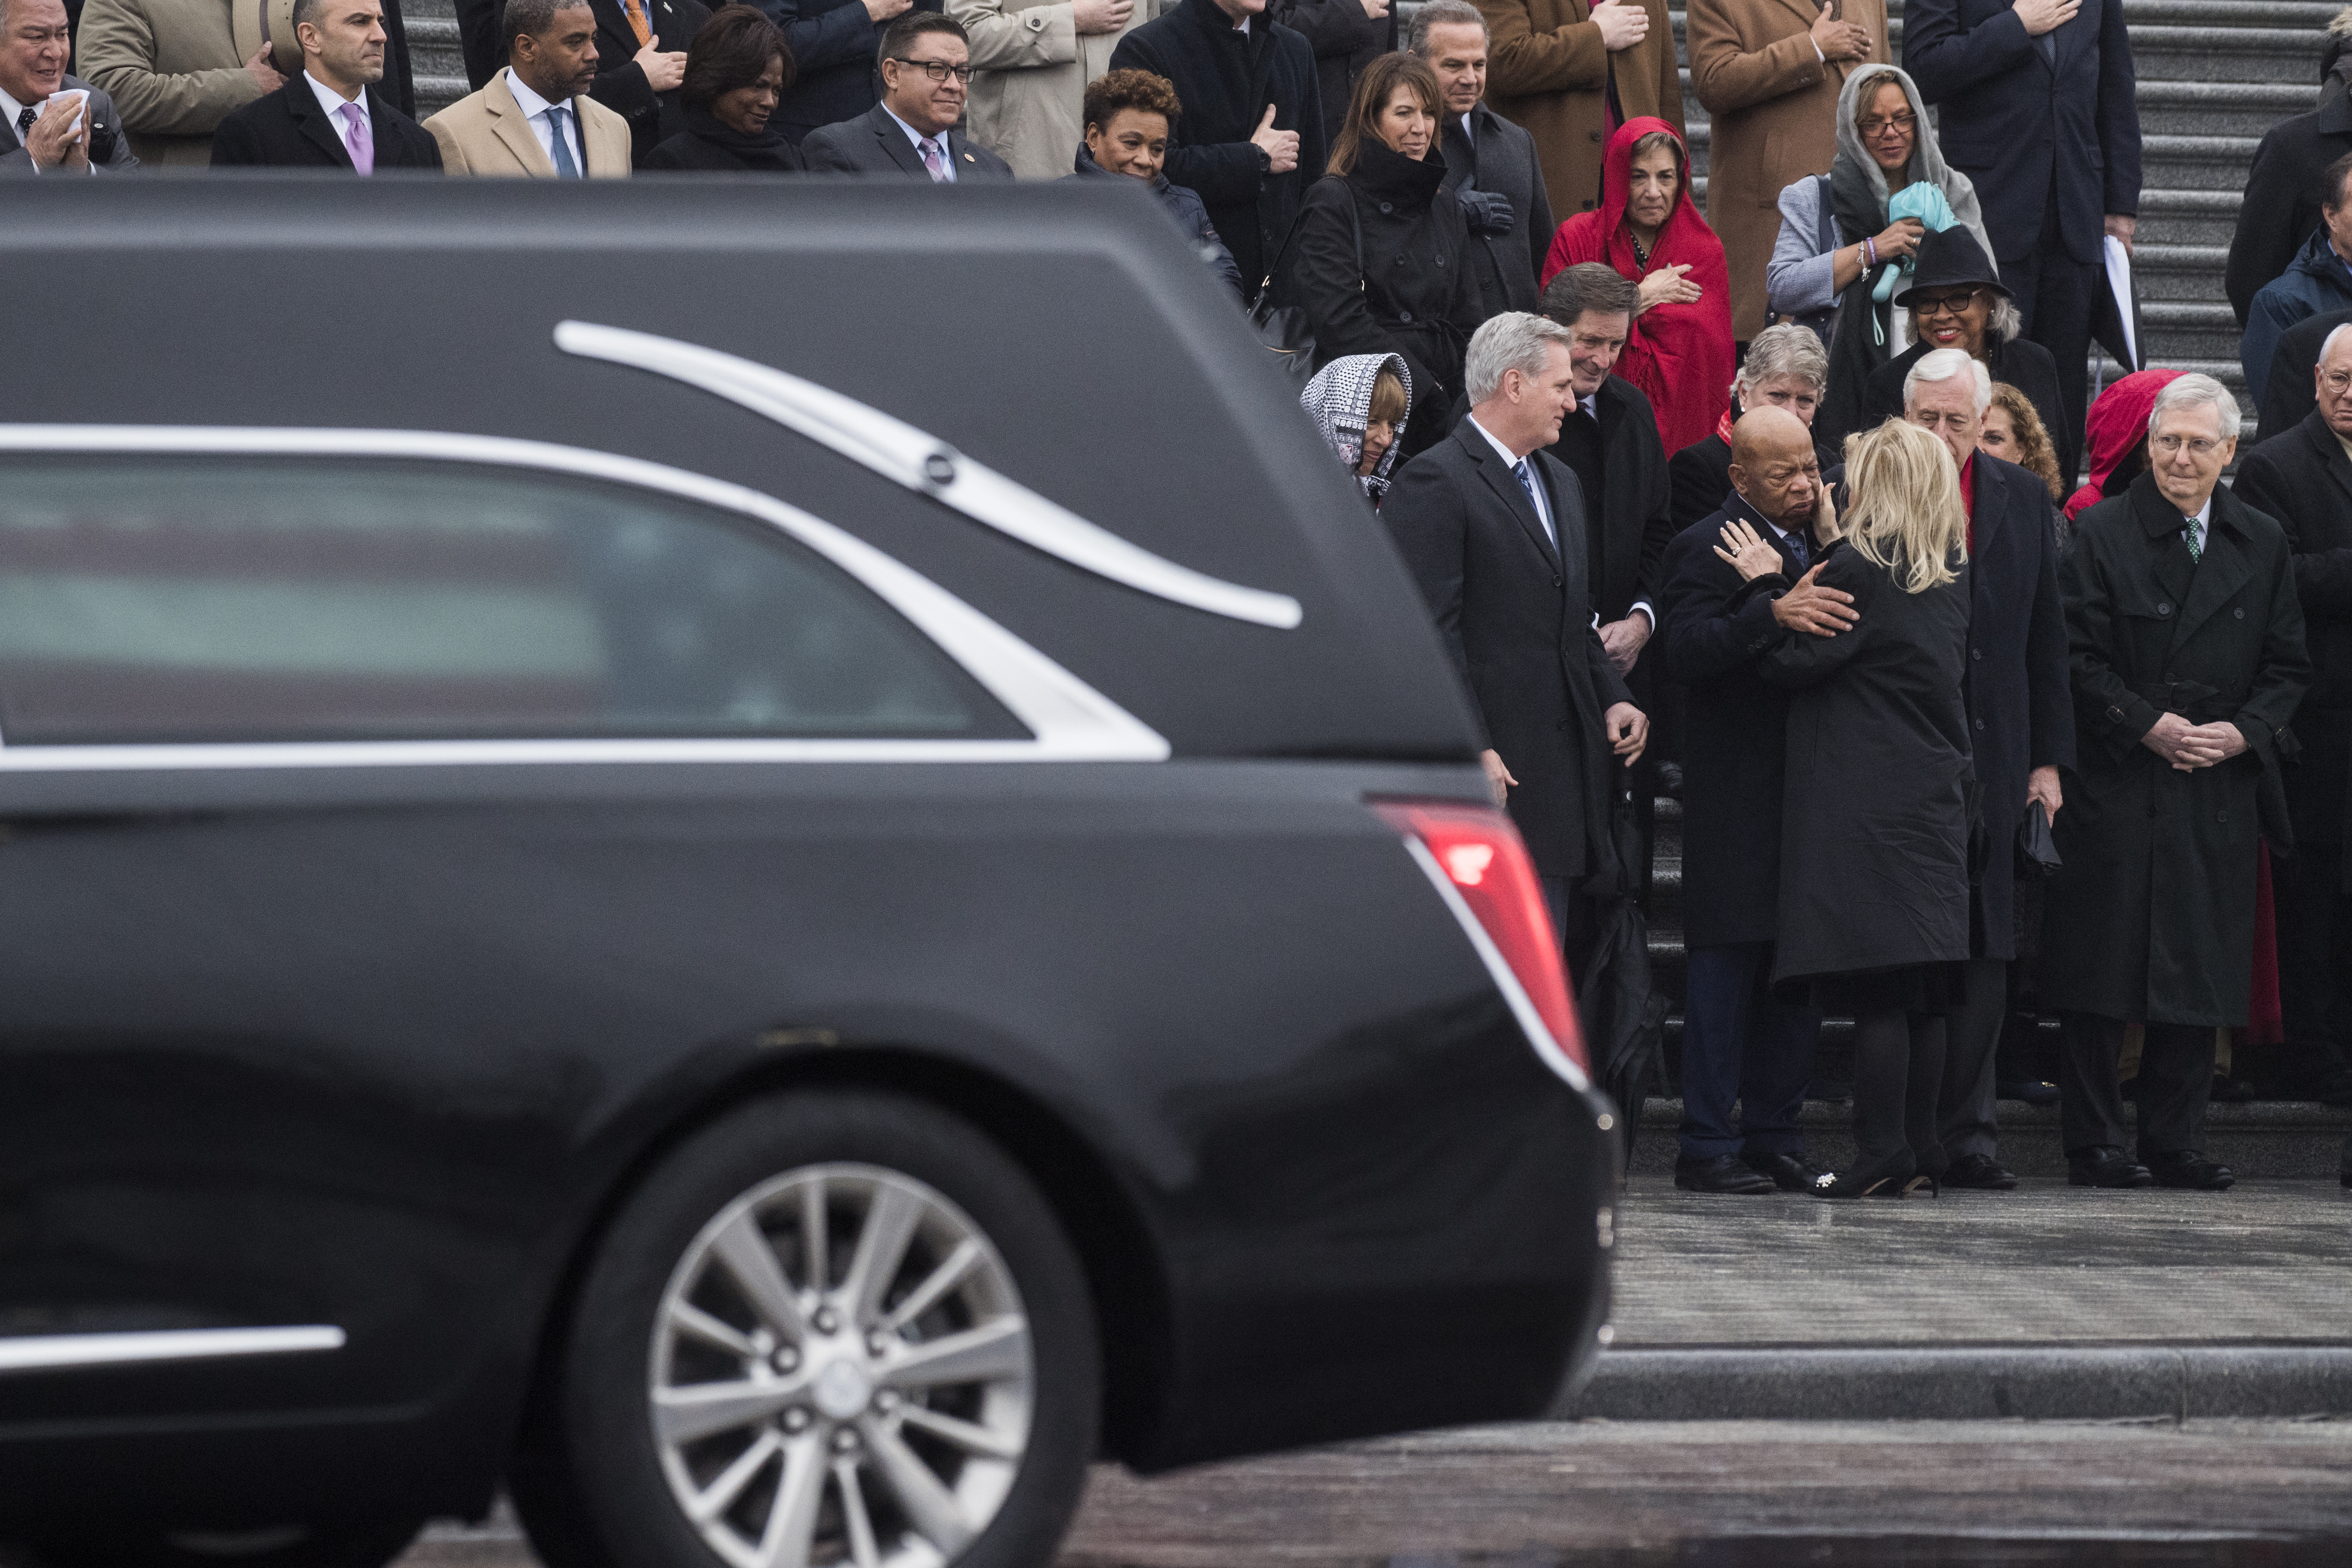 UNITED STATES - FEBRUARY 12: Rep. John Lewis, D-Ga., greets Rep. Debbie Dingell, D-Mich., wife of the late Rep. John Dingell, D-Mich., as members pay respects to Dingell as the hearse containing his casket stops at the House Steps on the East Front of the Capitol on Tuesday, February 12, 2019. (Photo By Tom Williams/CQ Roll Call)